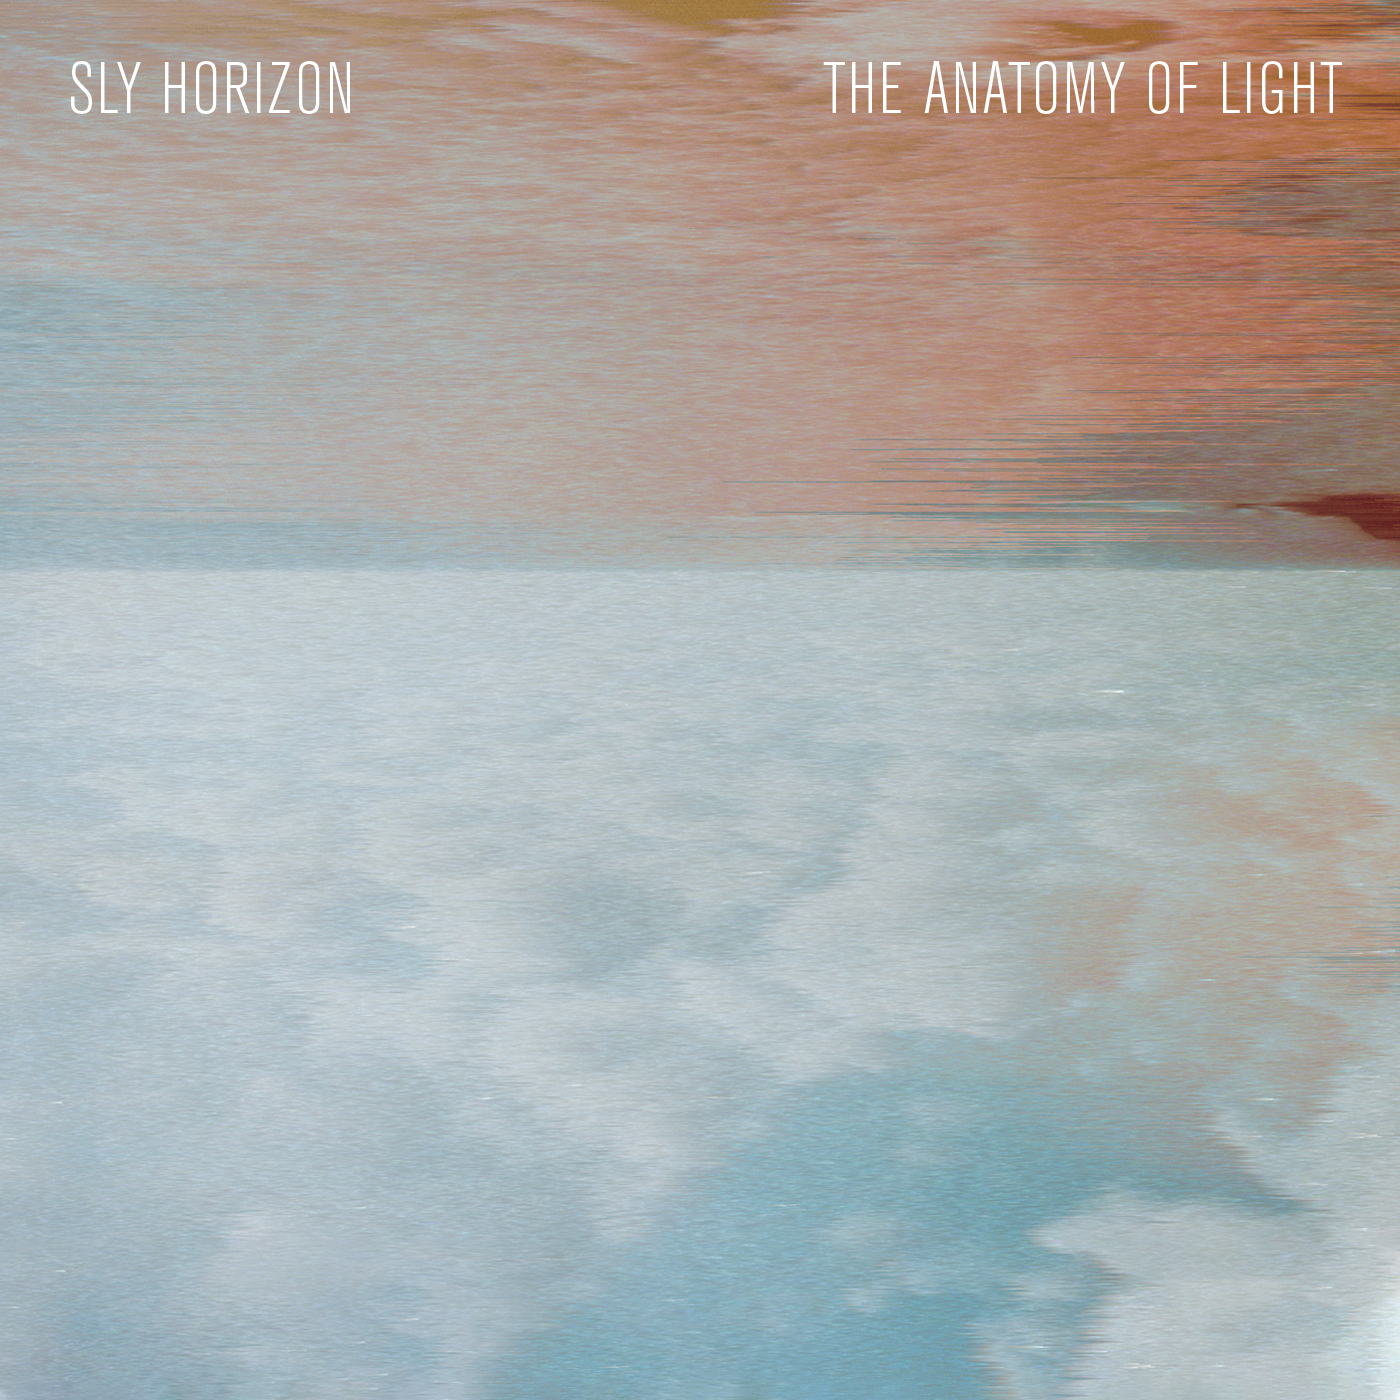 The Anatomy Of Light by Sly Horizon